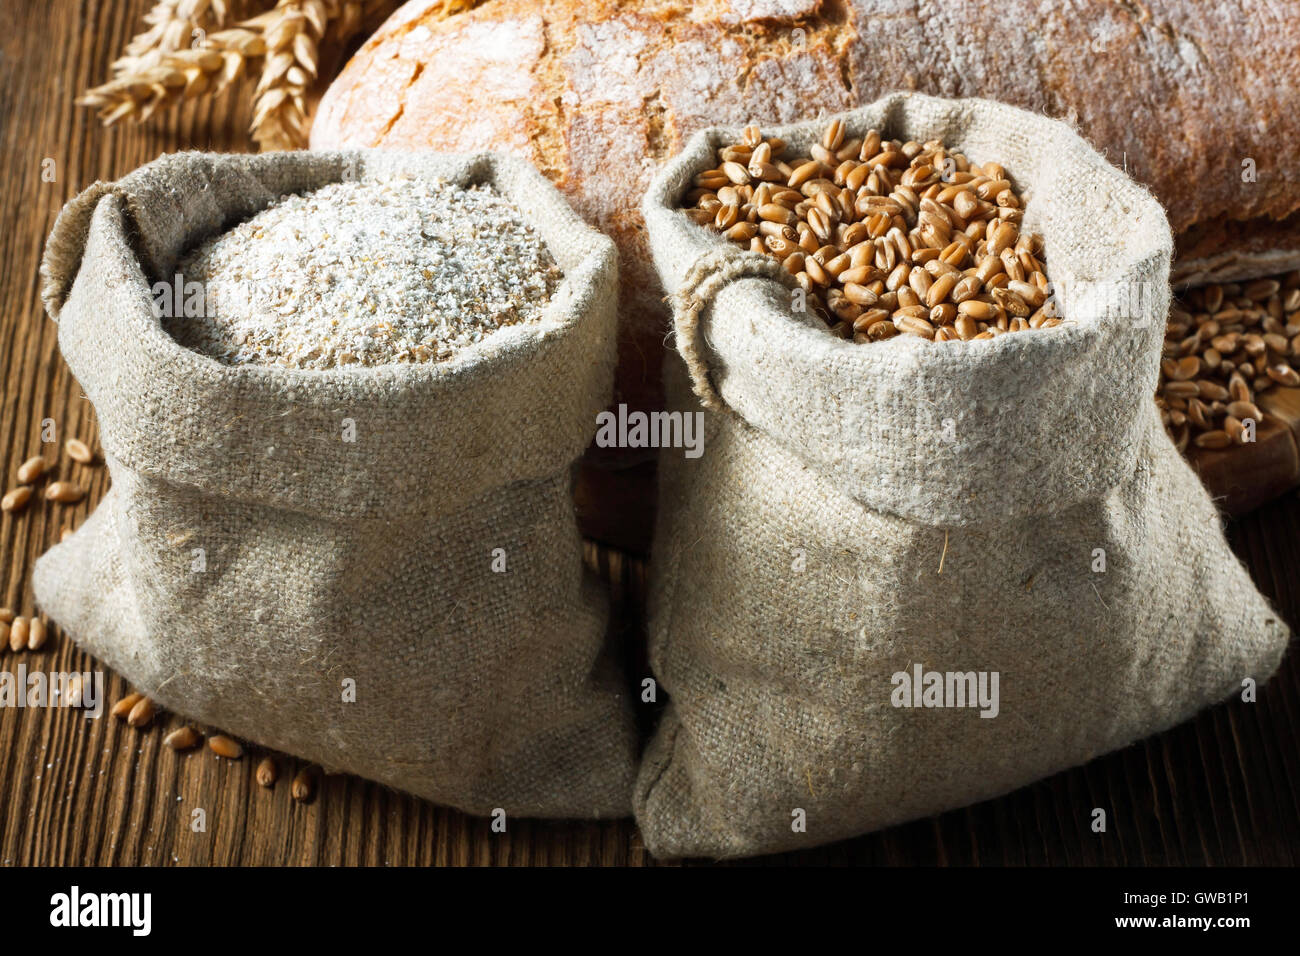 Wheat and wholemeal flour in small bags on wooden table - Stock Image